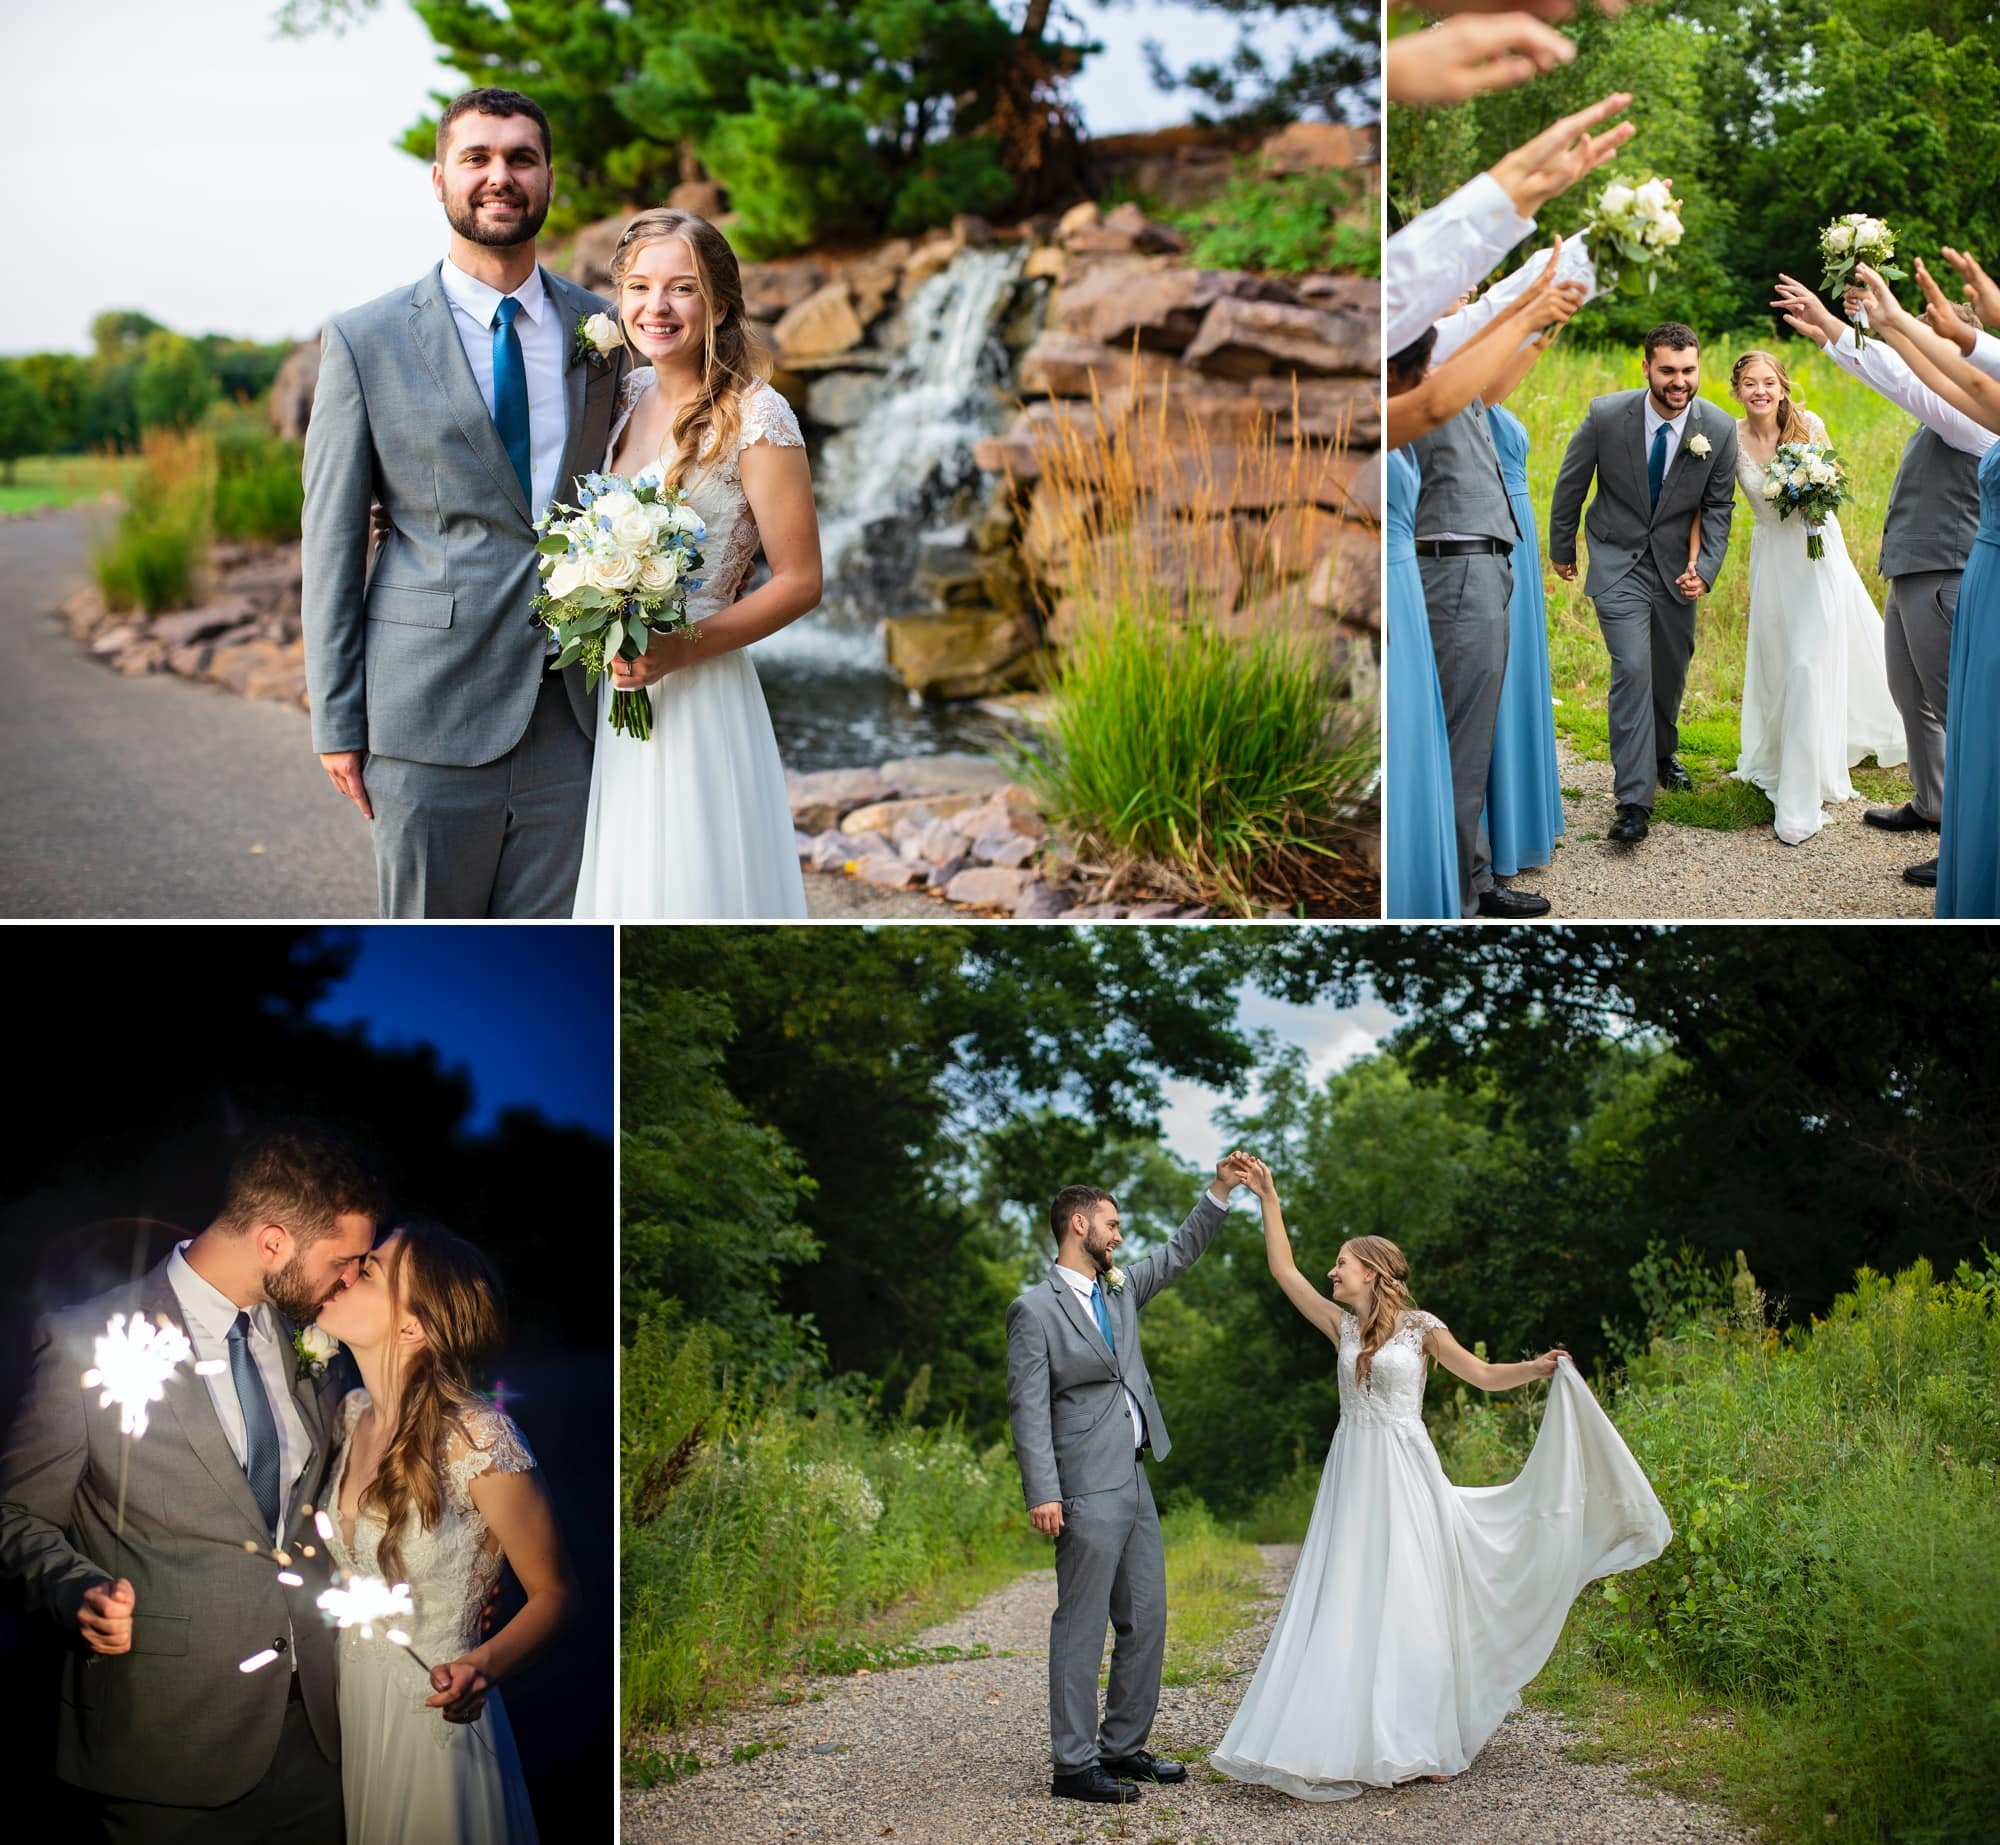 Photographs from Jenna and Joey's wedding at Stonebrook Golf Club in Shakopee, Minnesota.